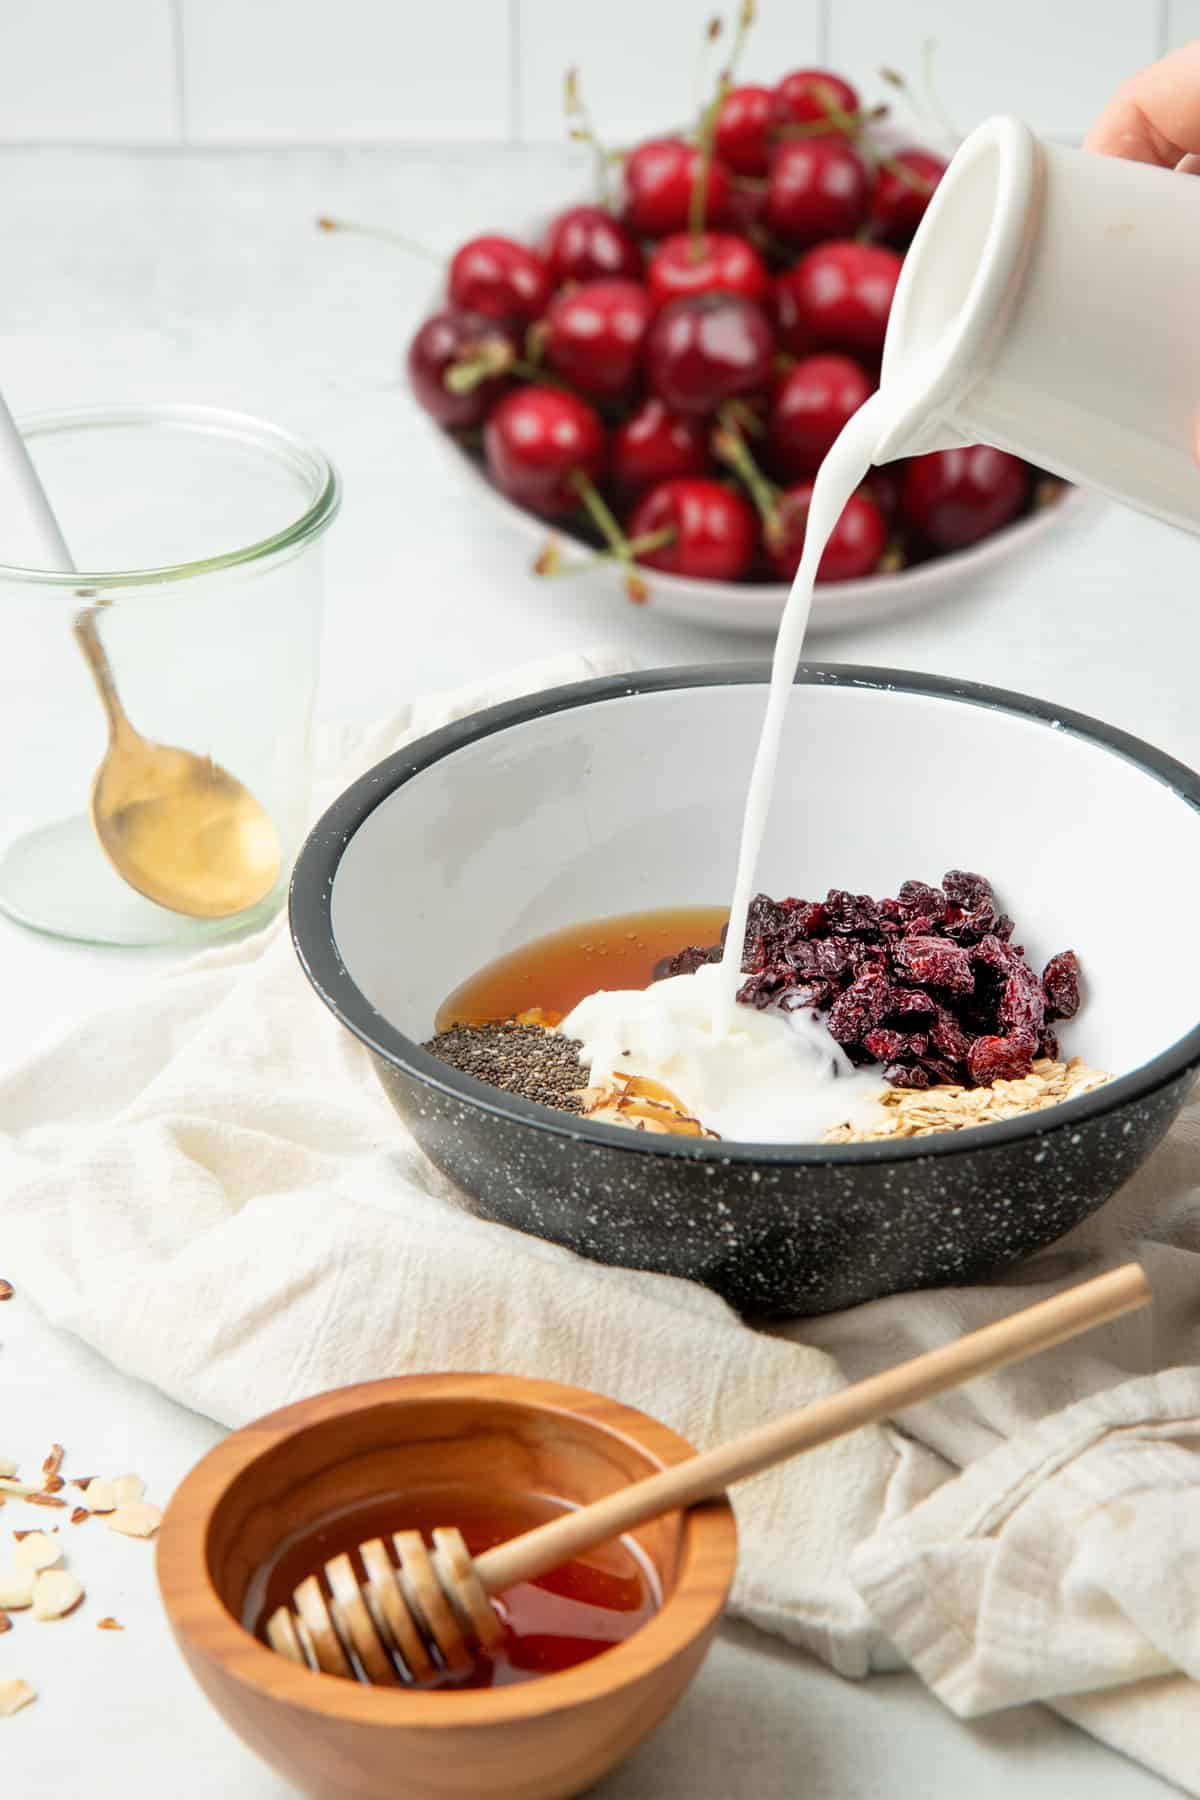 A pitcher pours milk into a mixing bowl full of oats, Greek yogurt, chia seeds, dried cherries, and other ingredients.